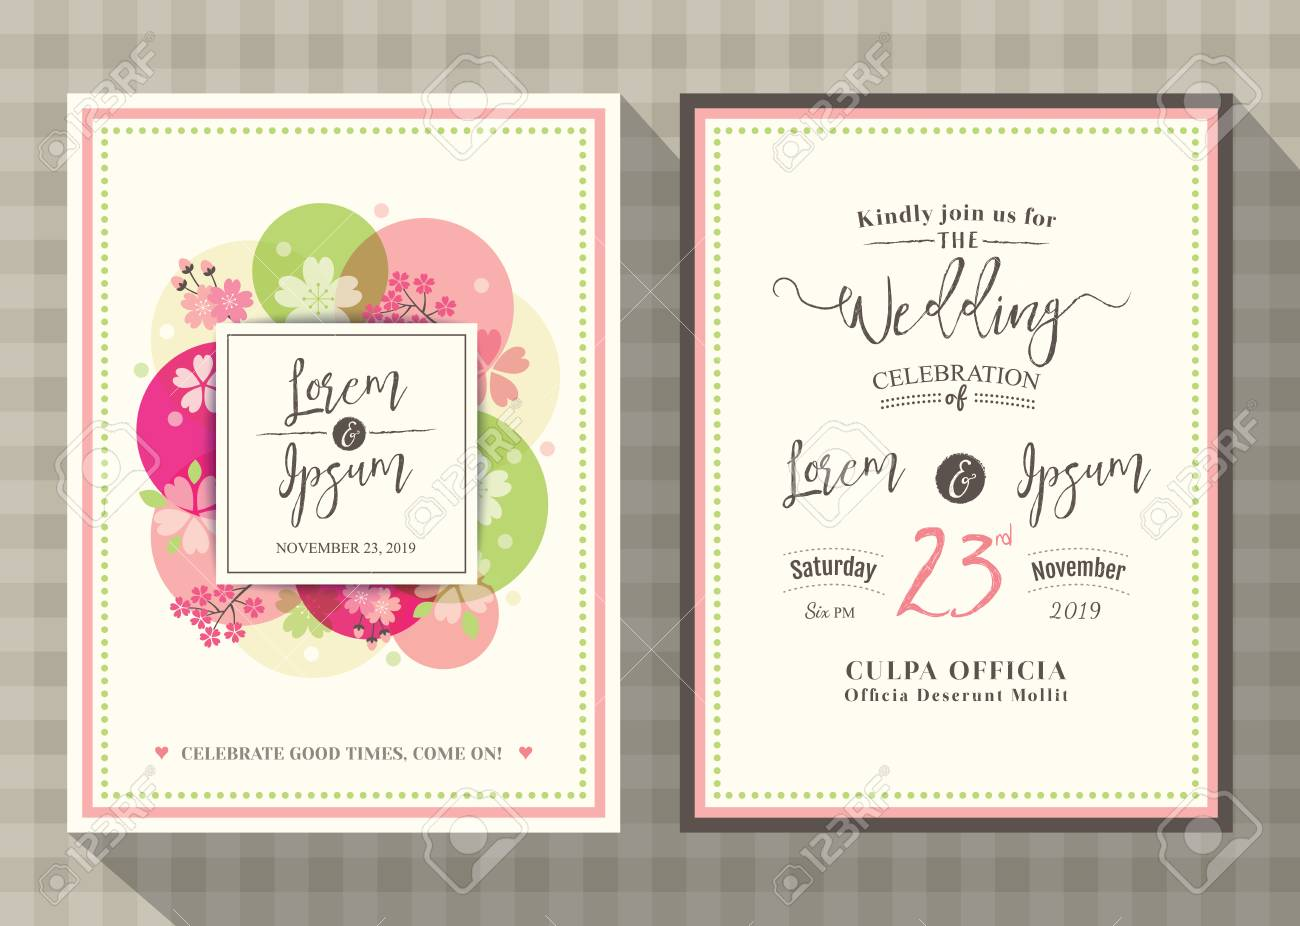 Floral Cherry Blossom Wedding Invitation Card Design Template ...